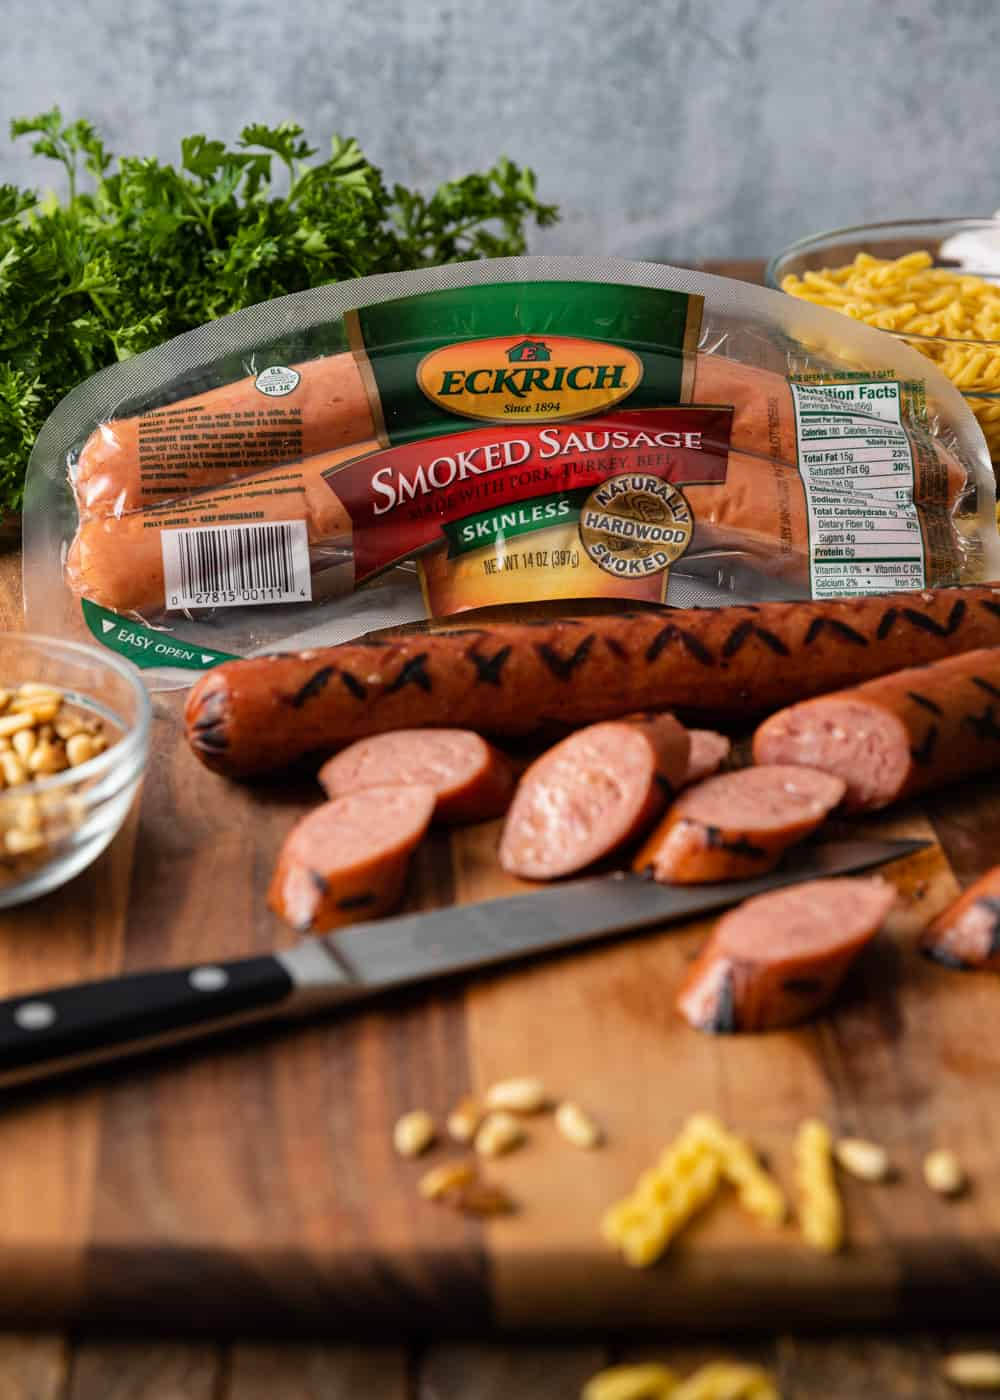 Eckrich sausages on cutting board